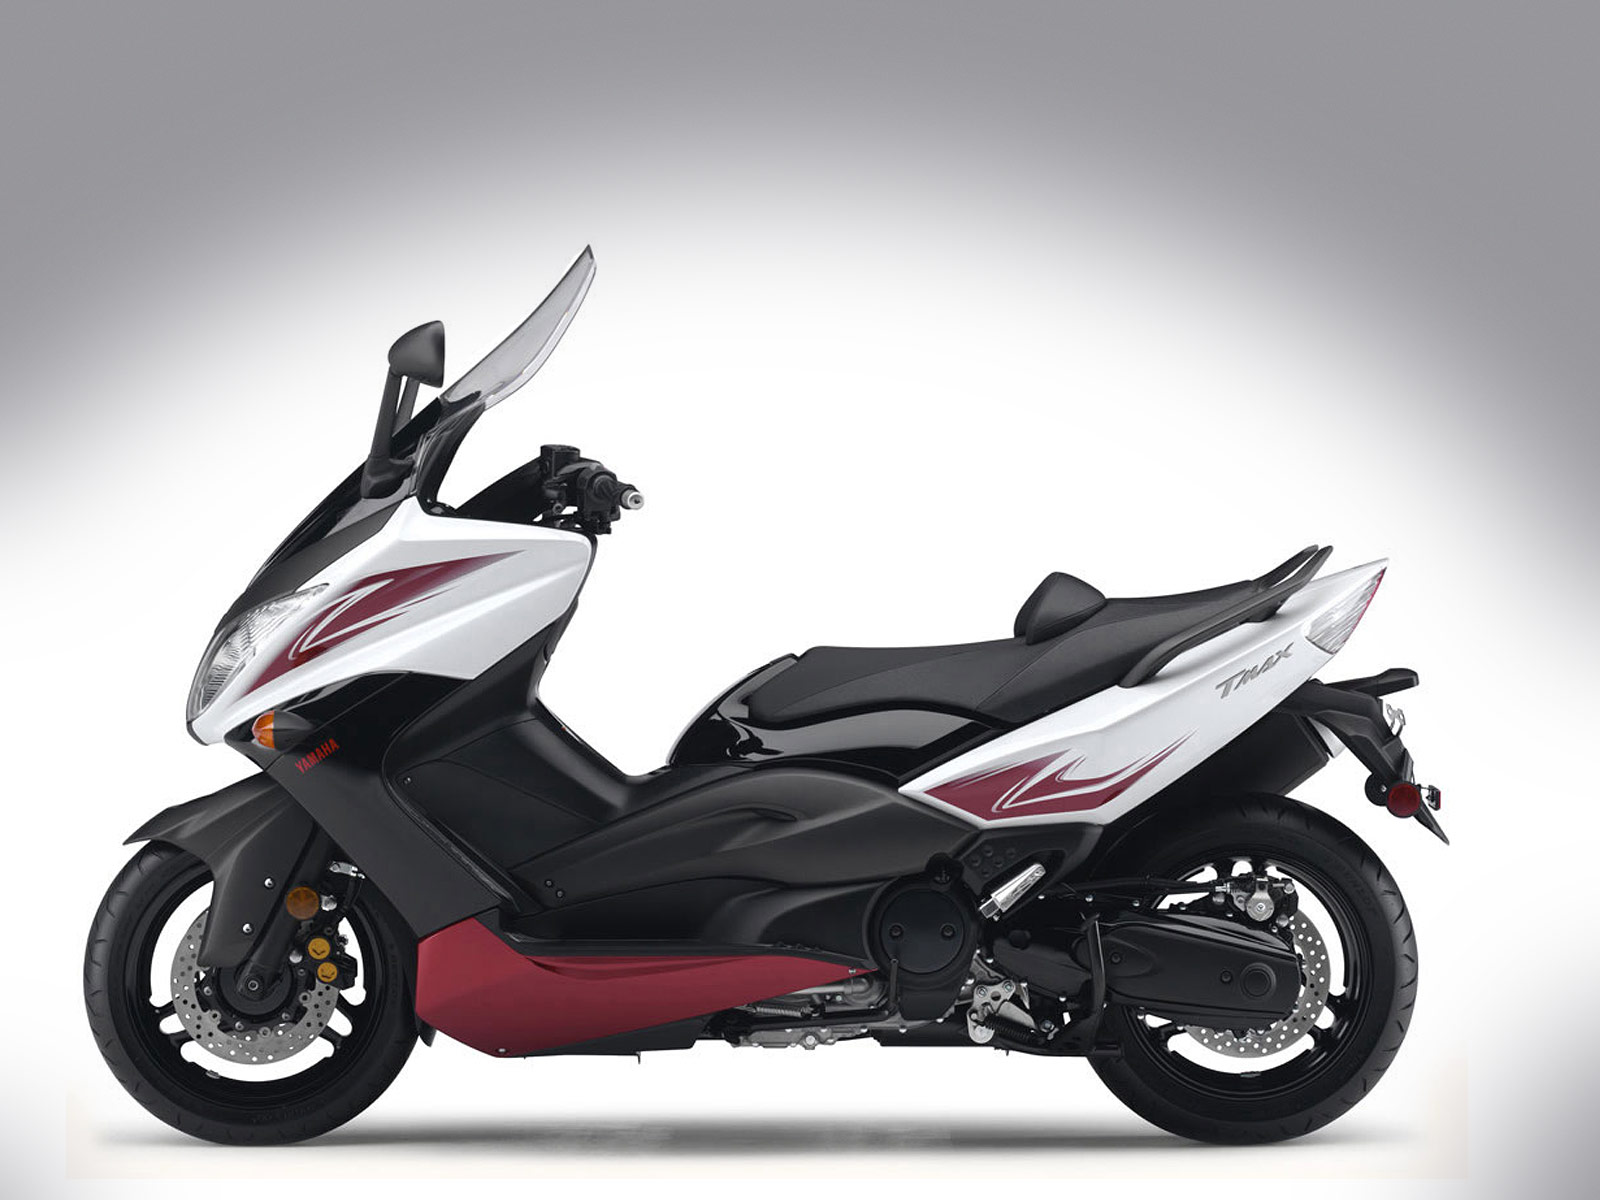 2010 yamaha tmax pictures review and specifications. Black Bedroom Furniture Sets. Home Design Ideas